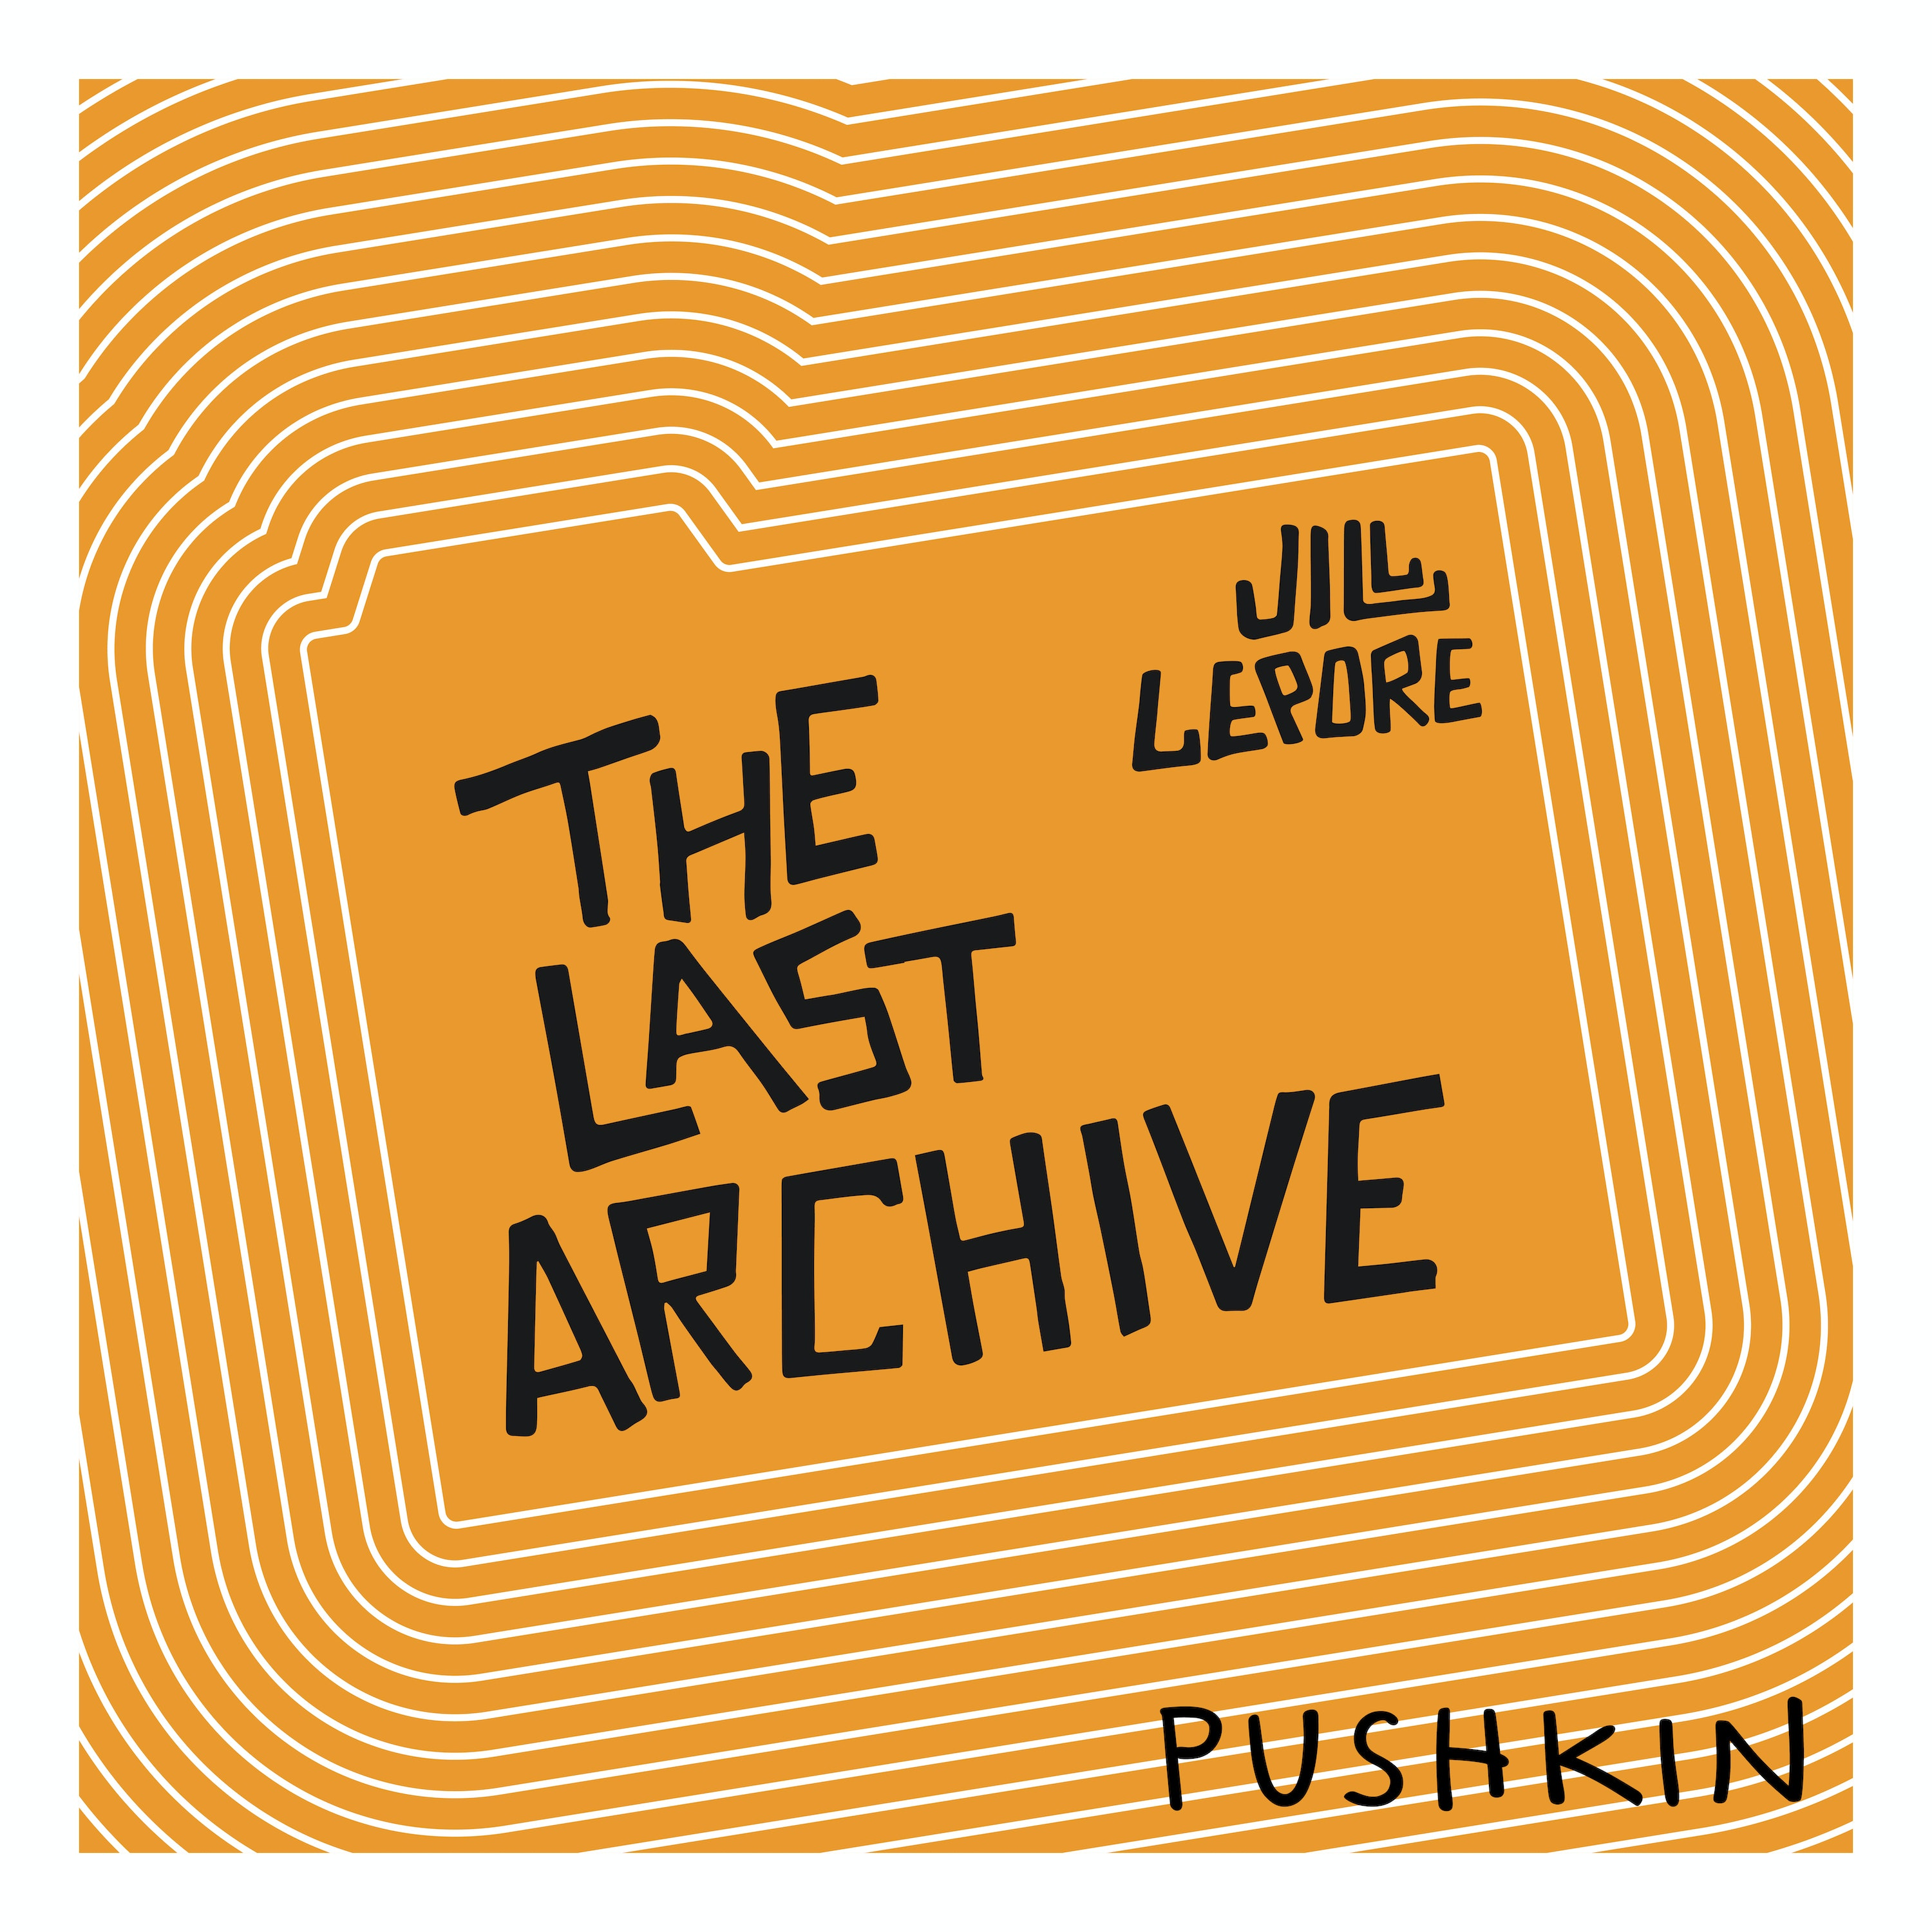 The Last Archive podcast